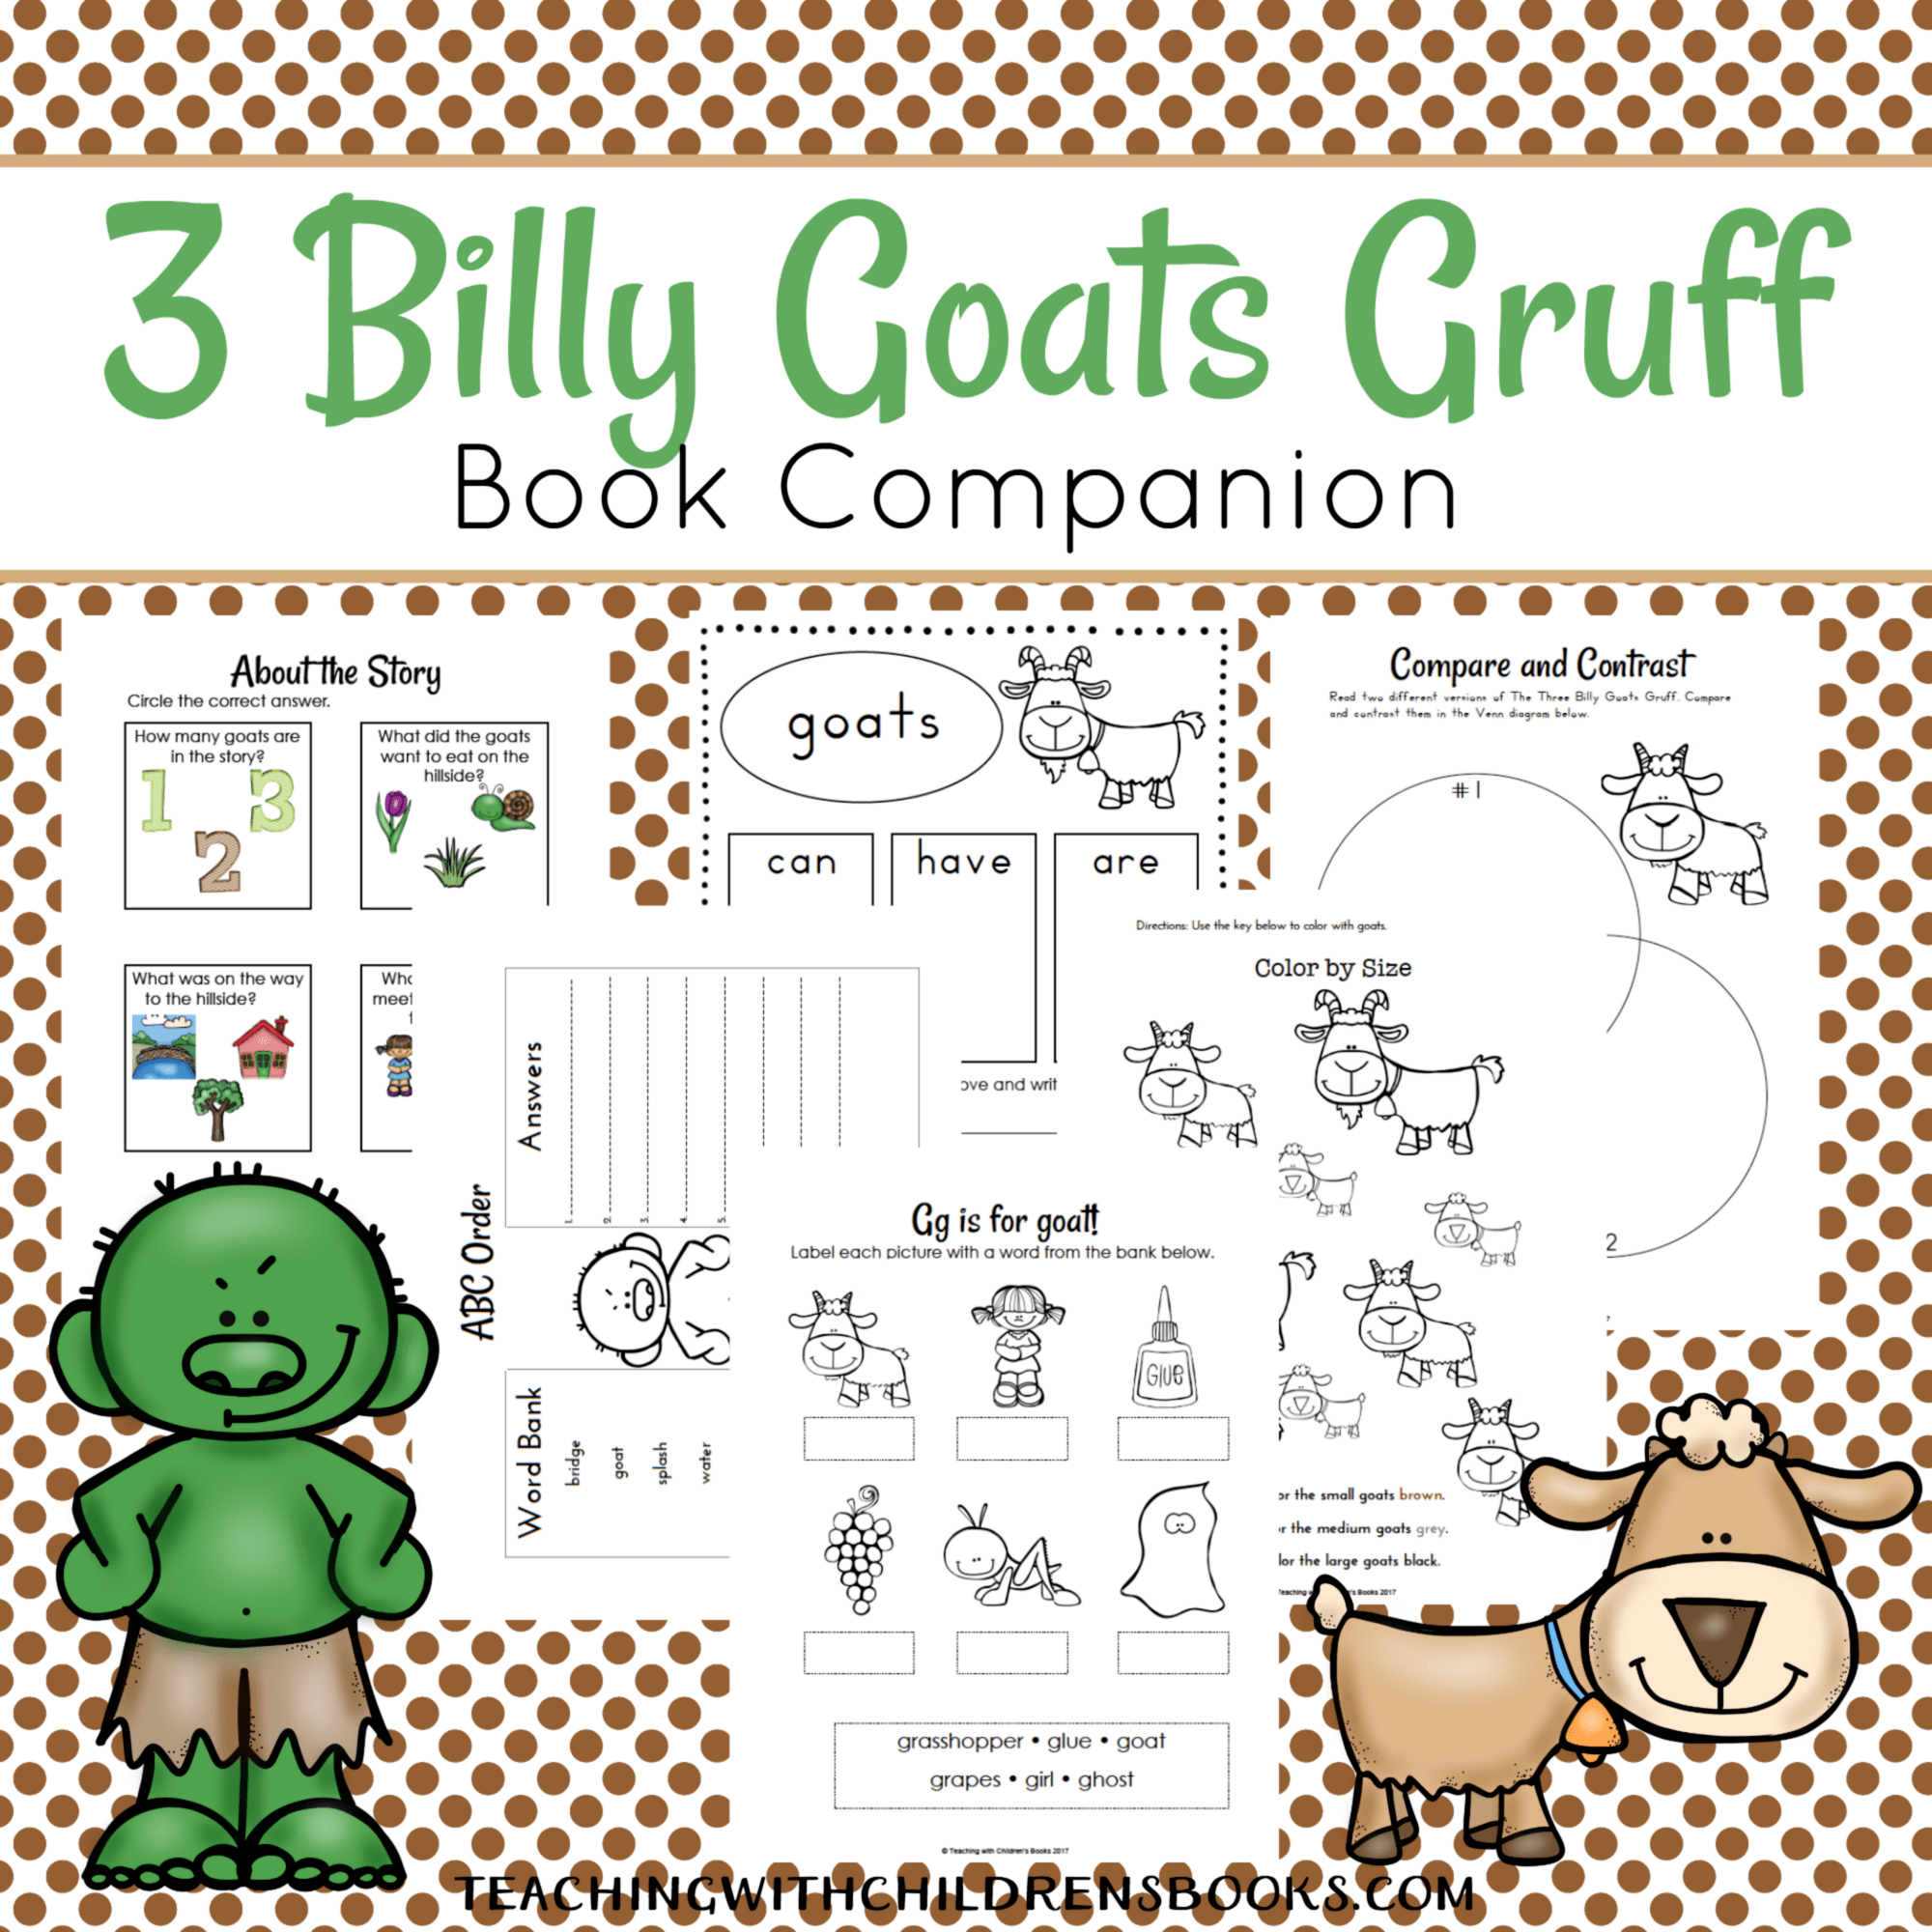 Three Billy Goats Gruff Book Companion